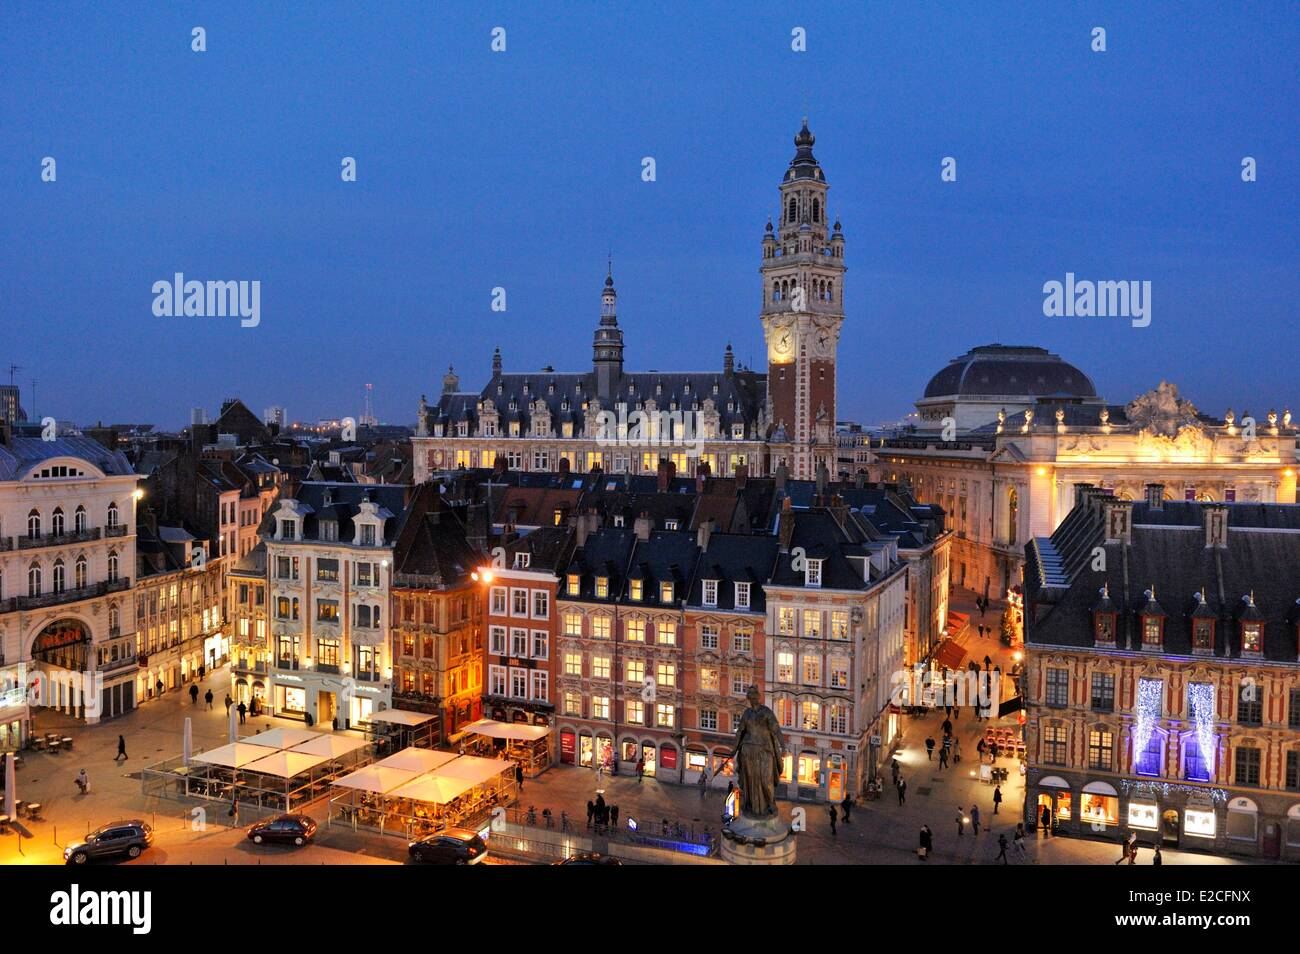 France, Nord, Lille, belfry of Chamber of Commerce and Industry and Grand Place from big wheel set up for Christmas - Stock Image